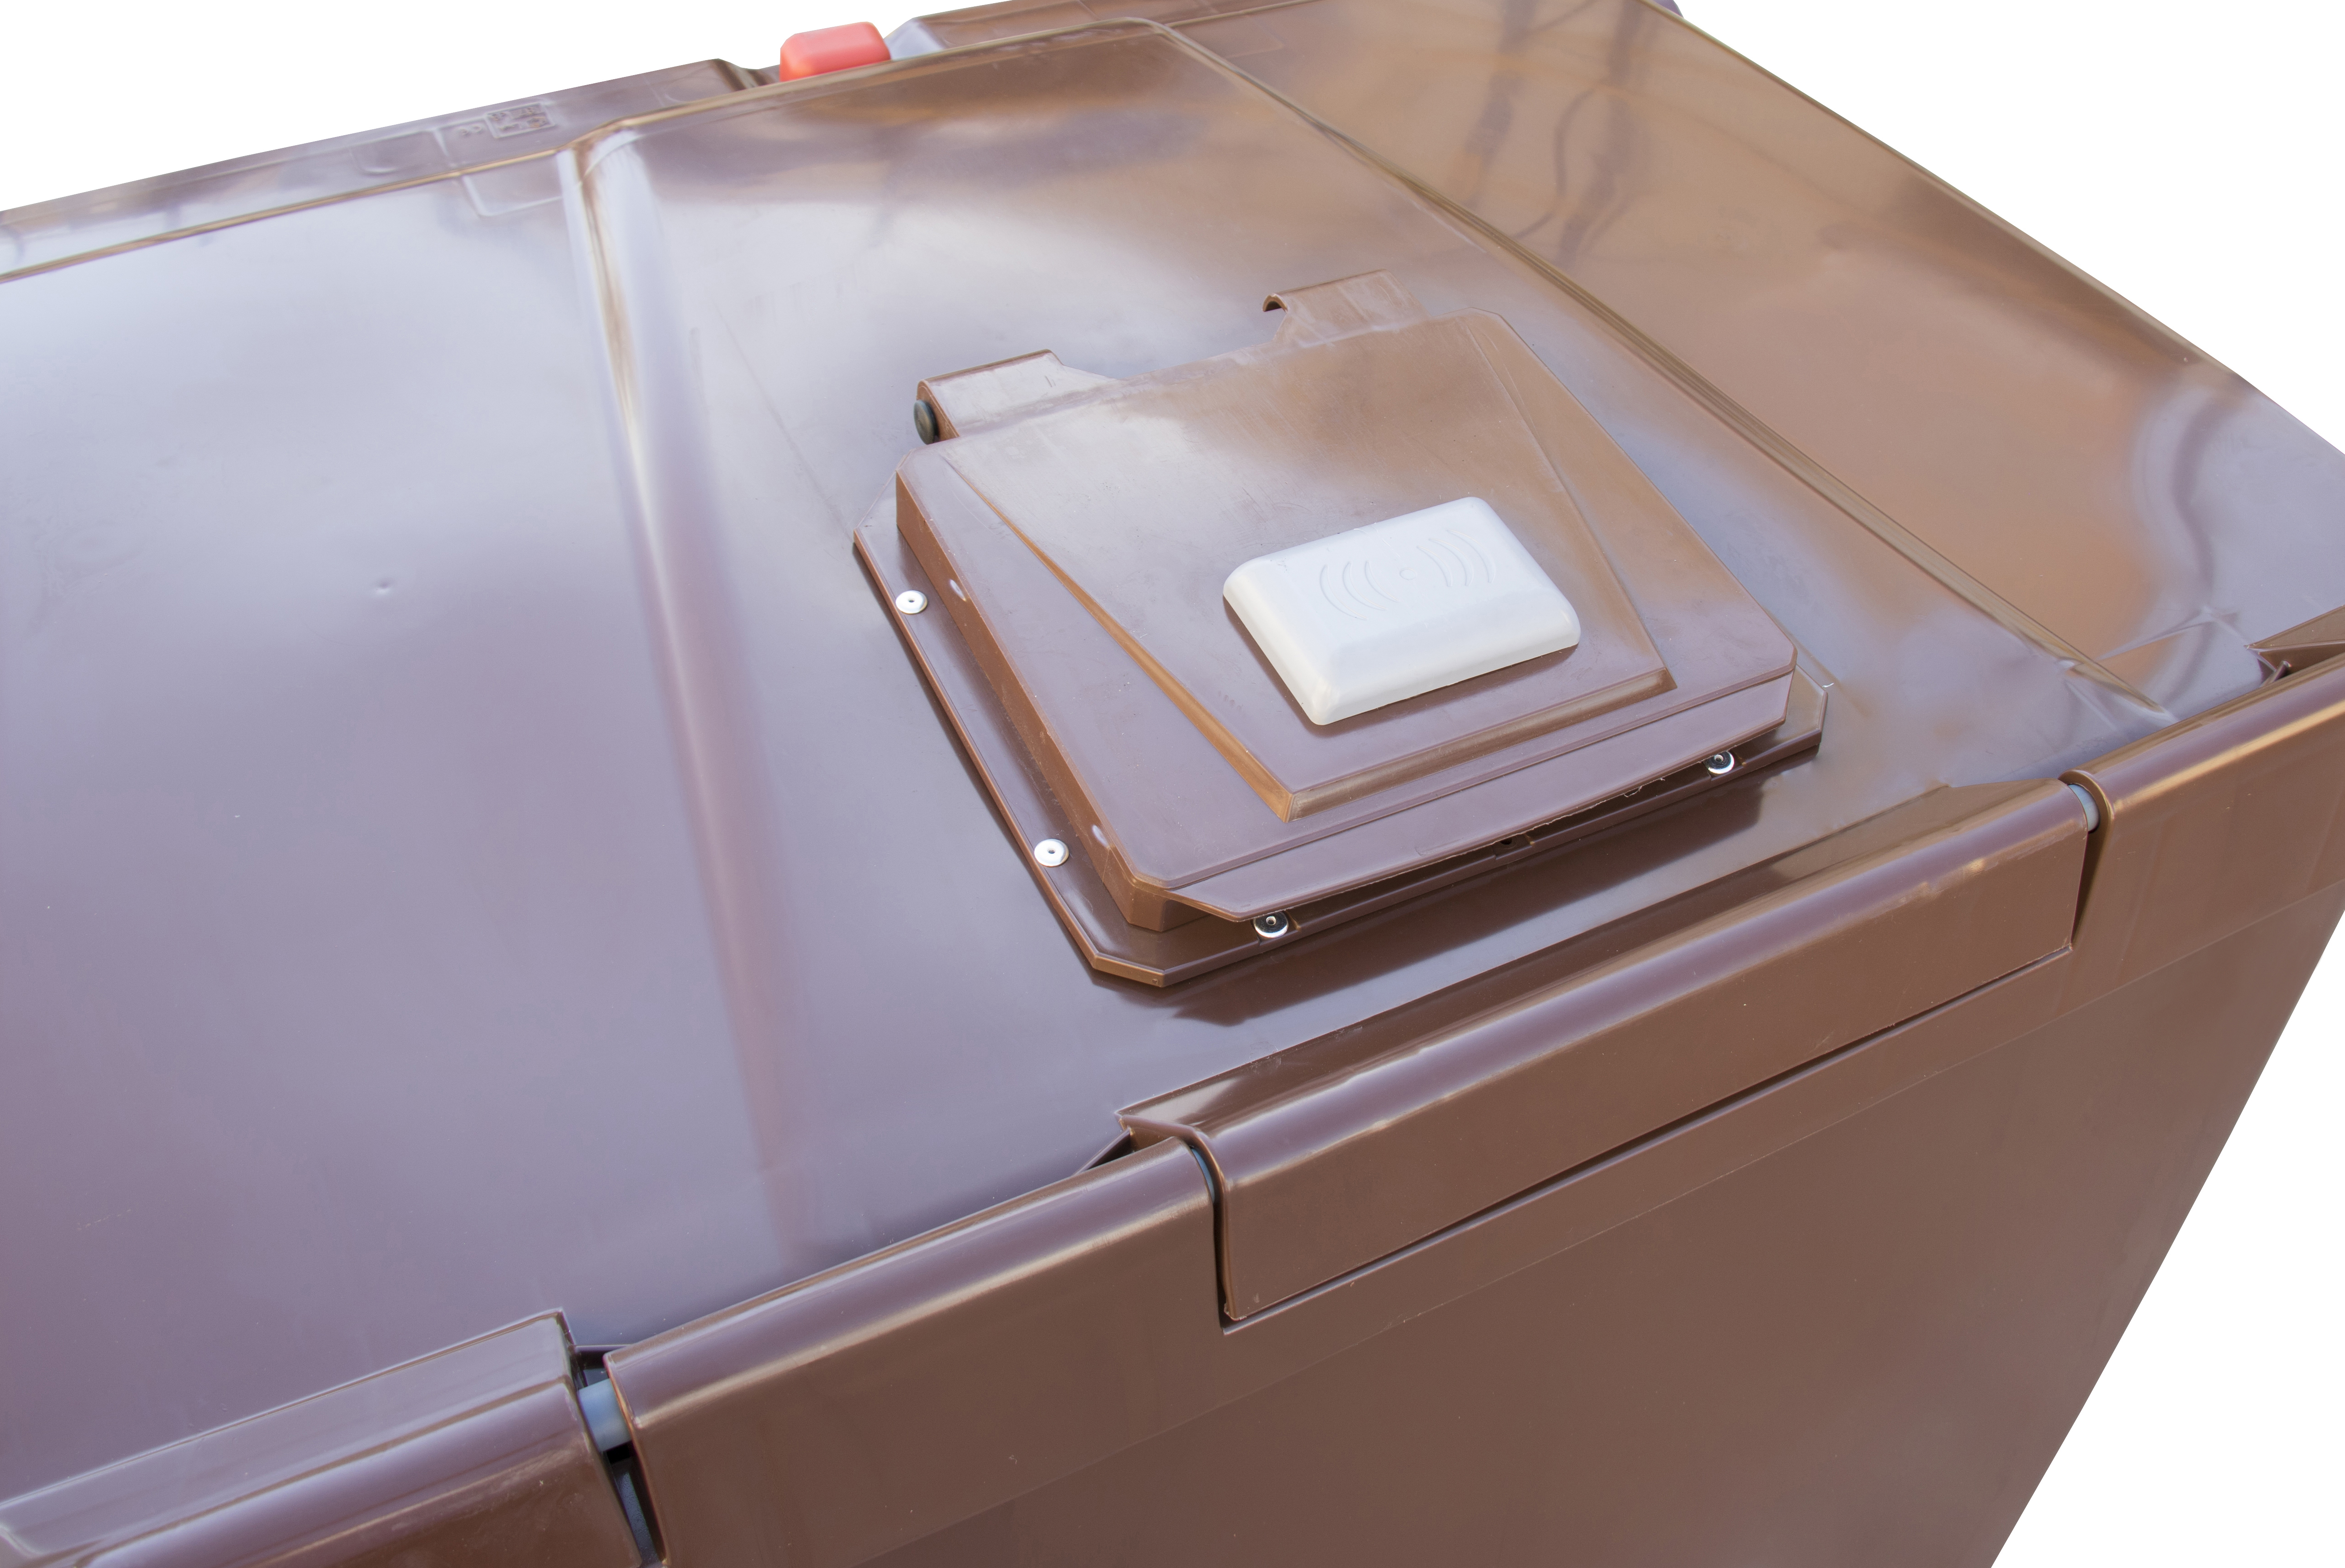 Electronically-lockable rain cover